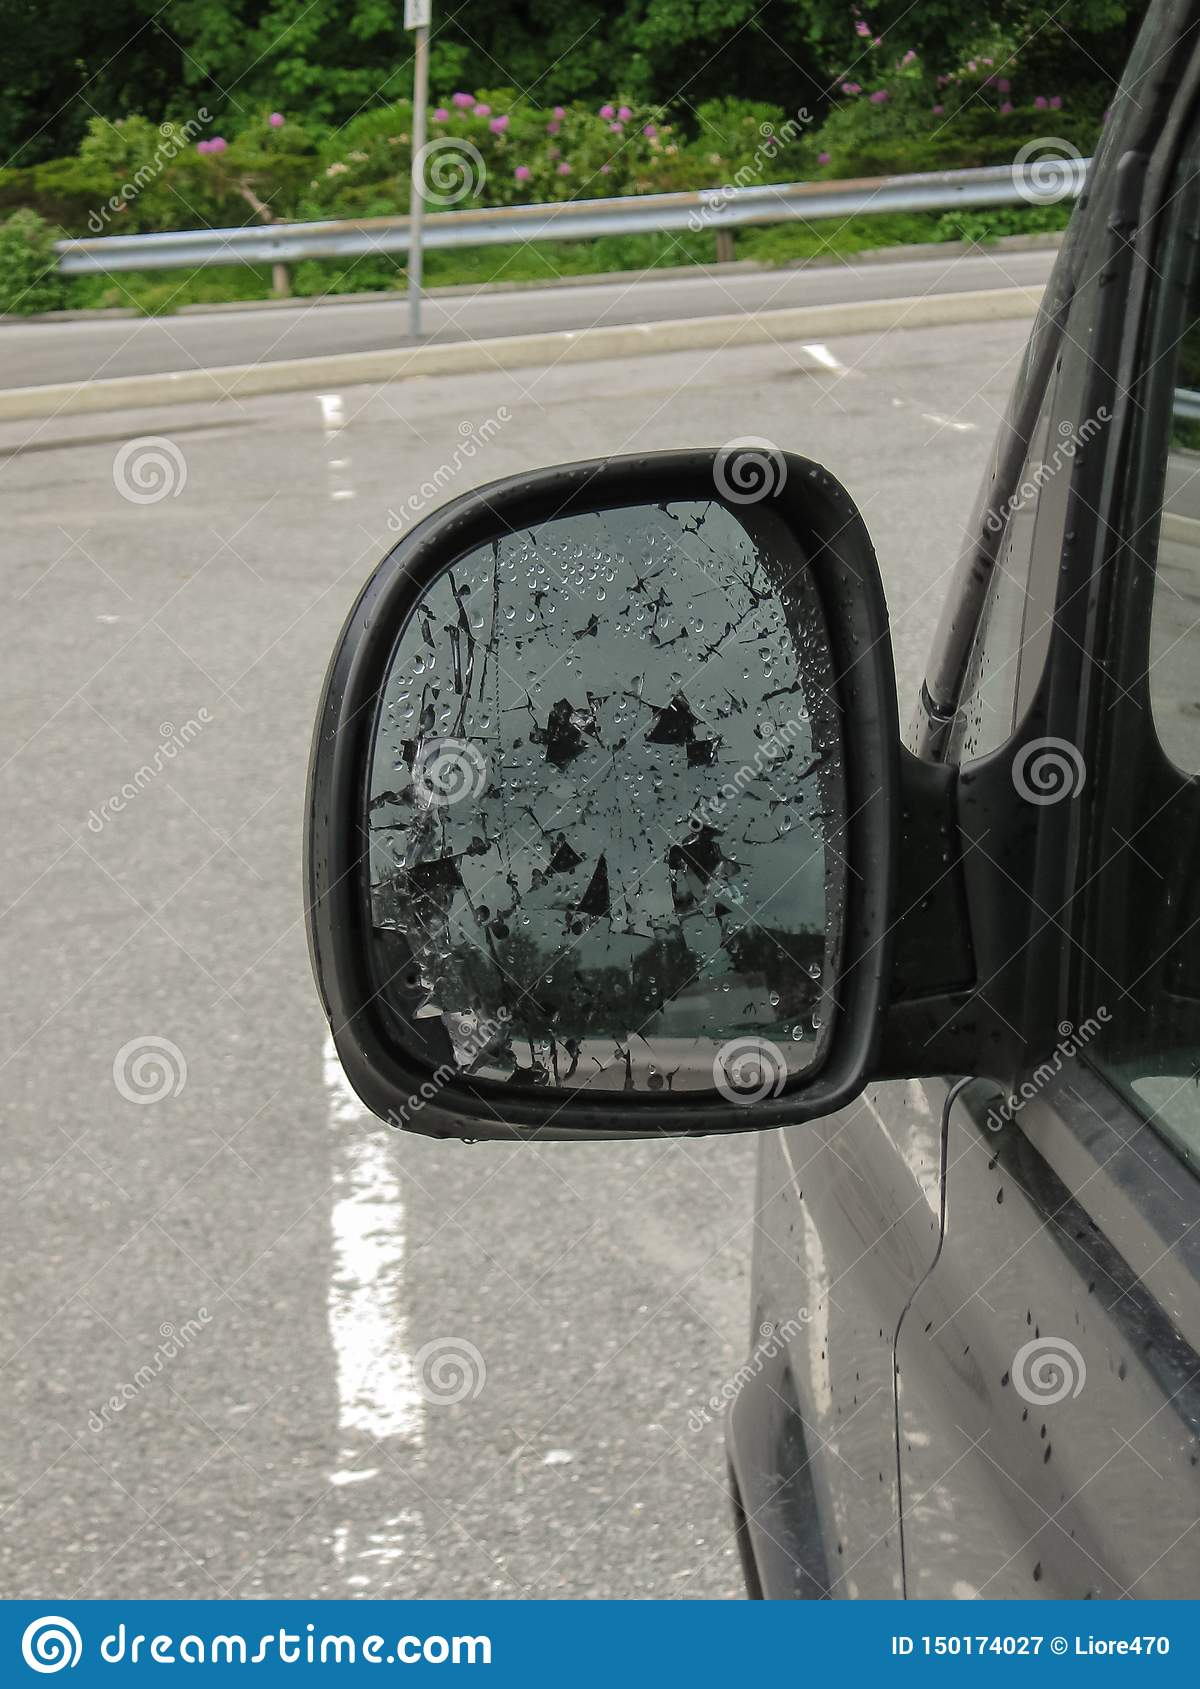 Broken side mirror car close-up. The consequences of the accident or an act of vandalism